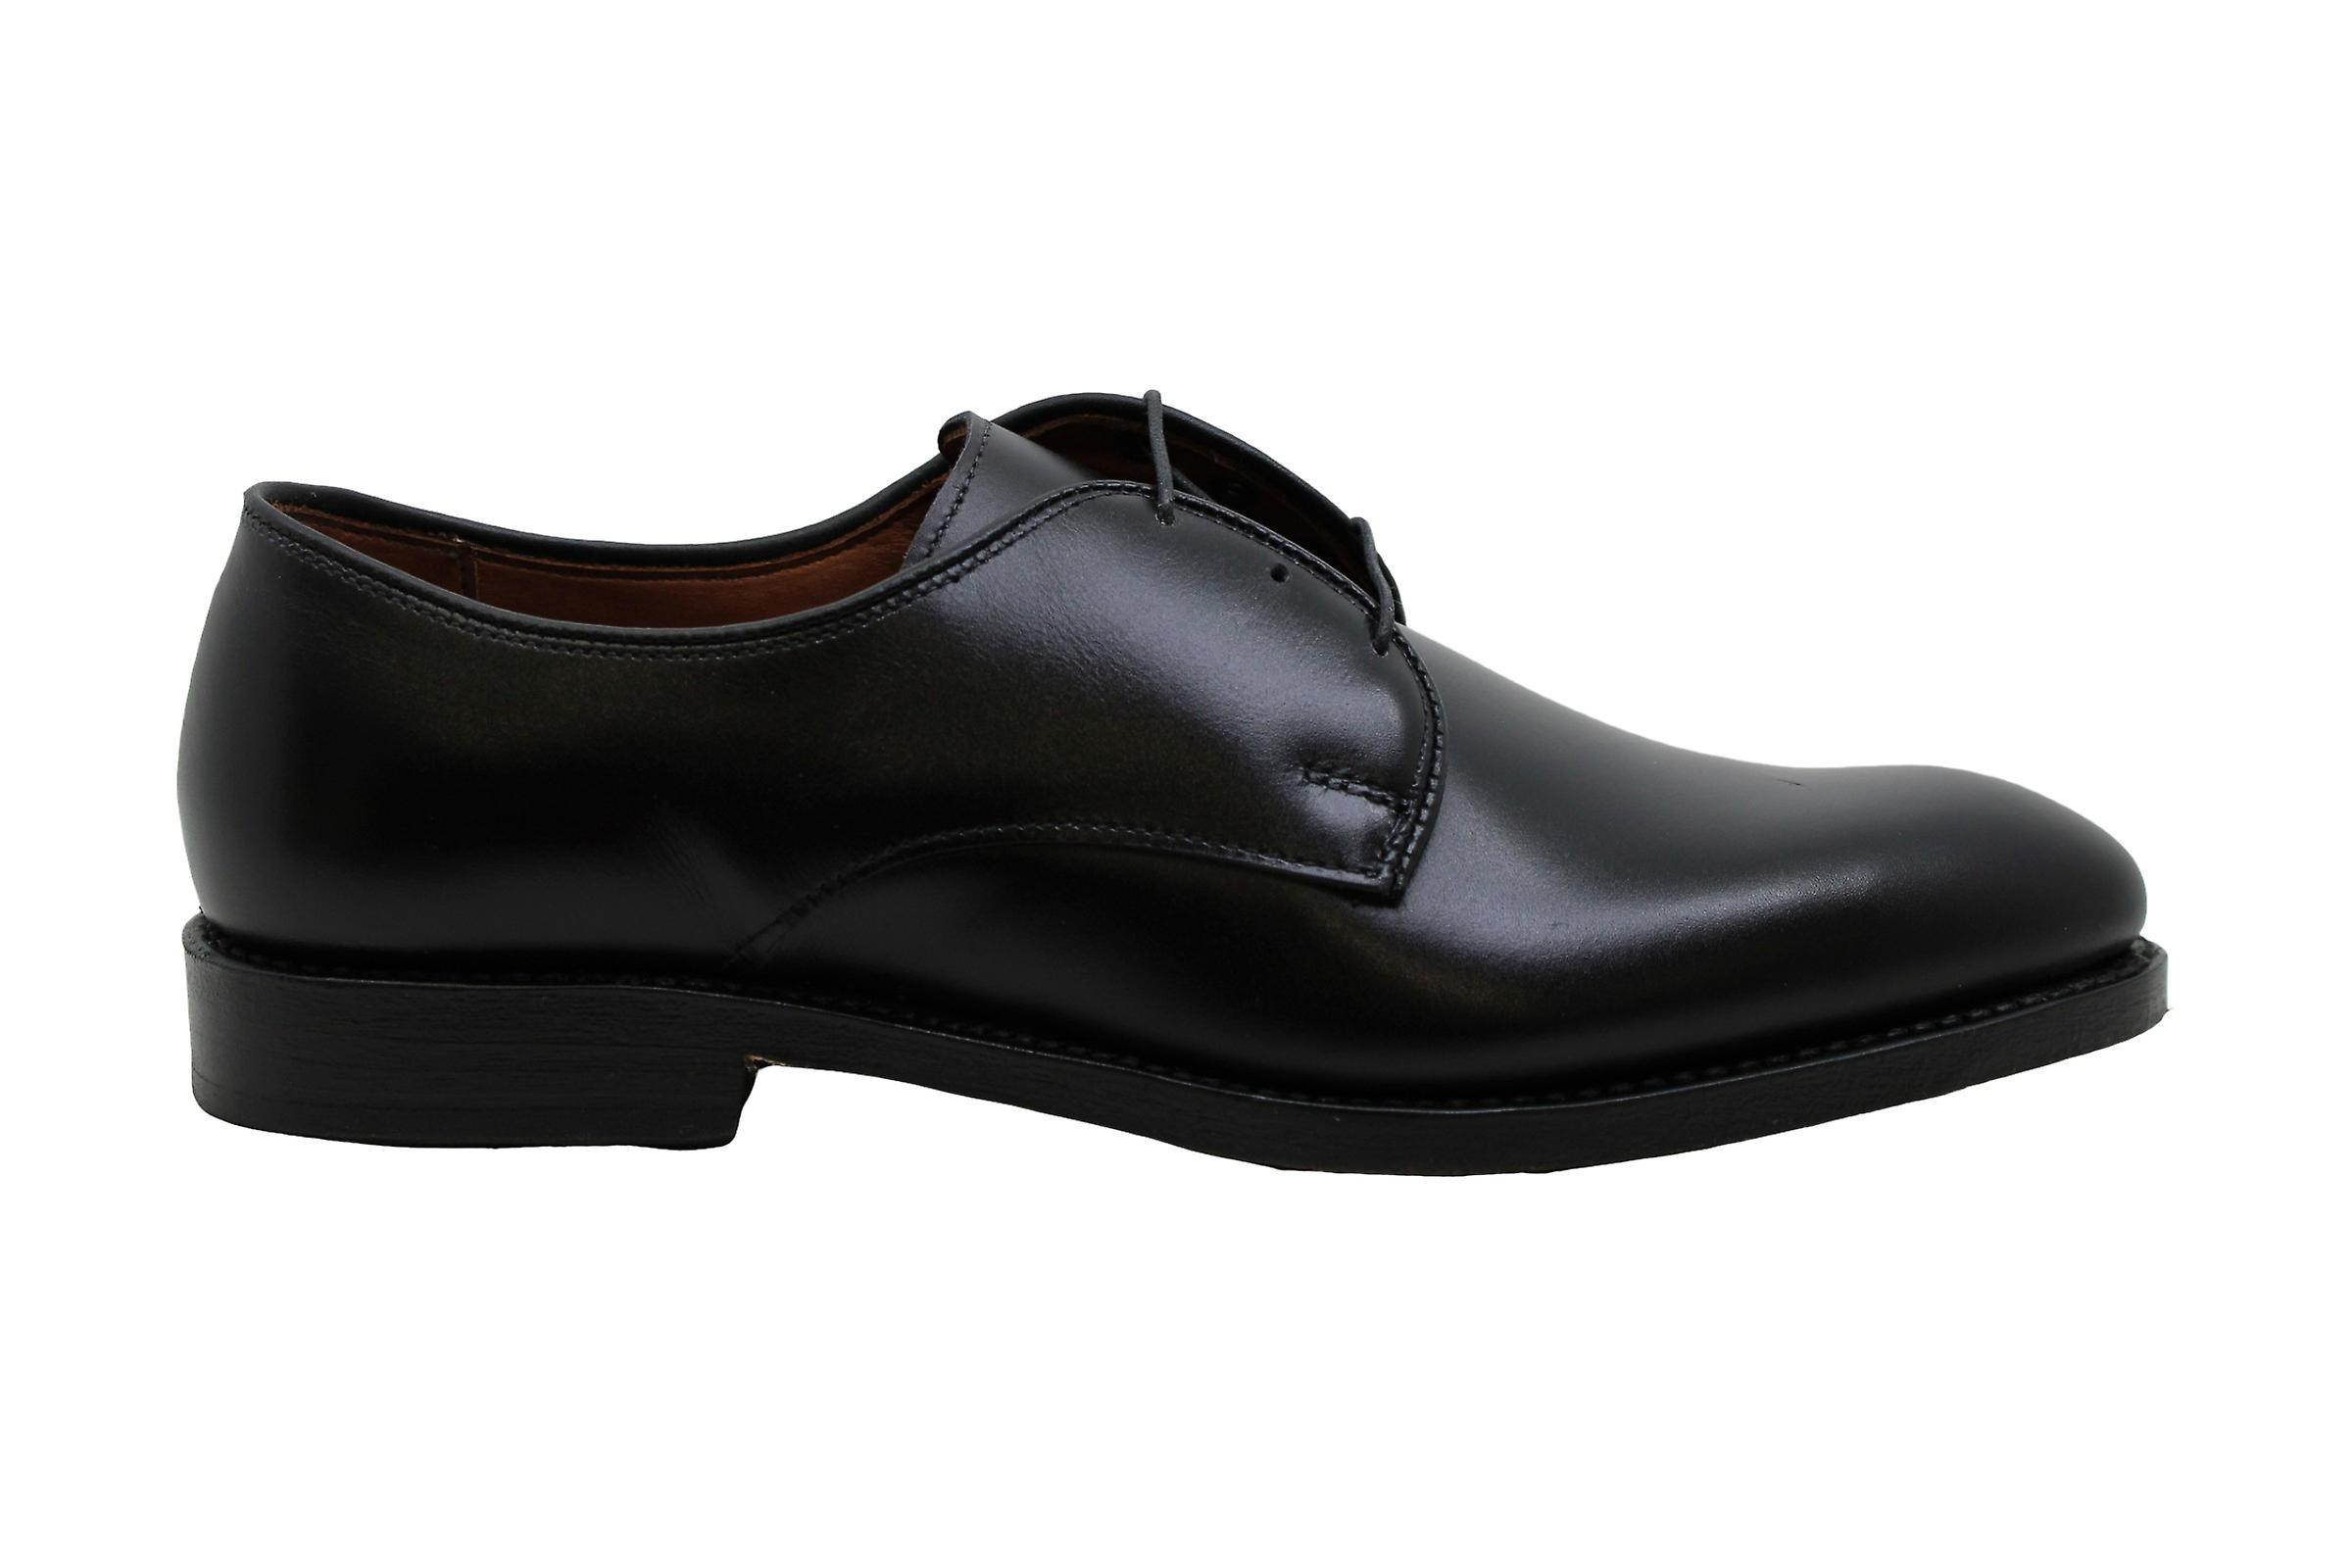 Allen Edmonds Men's Kenilworth Lace-up